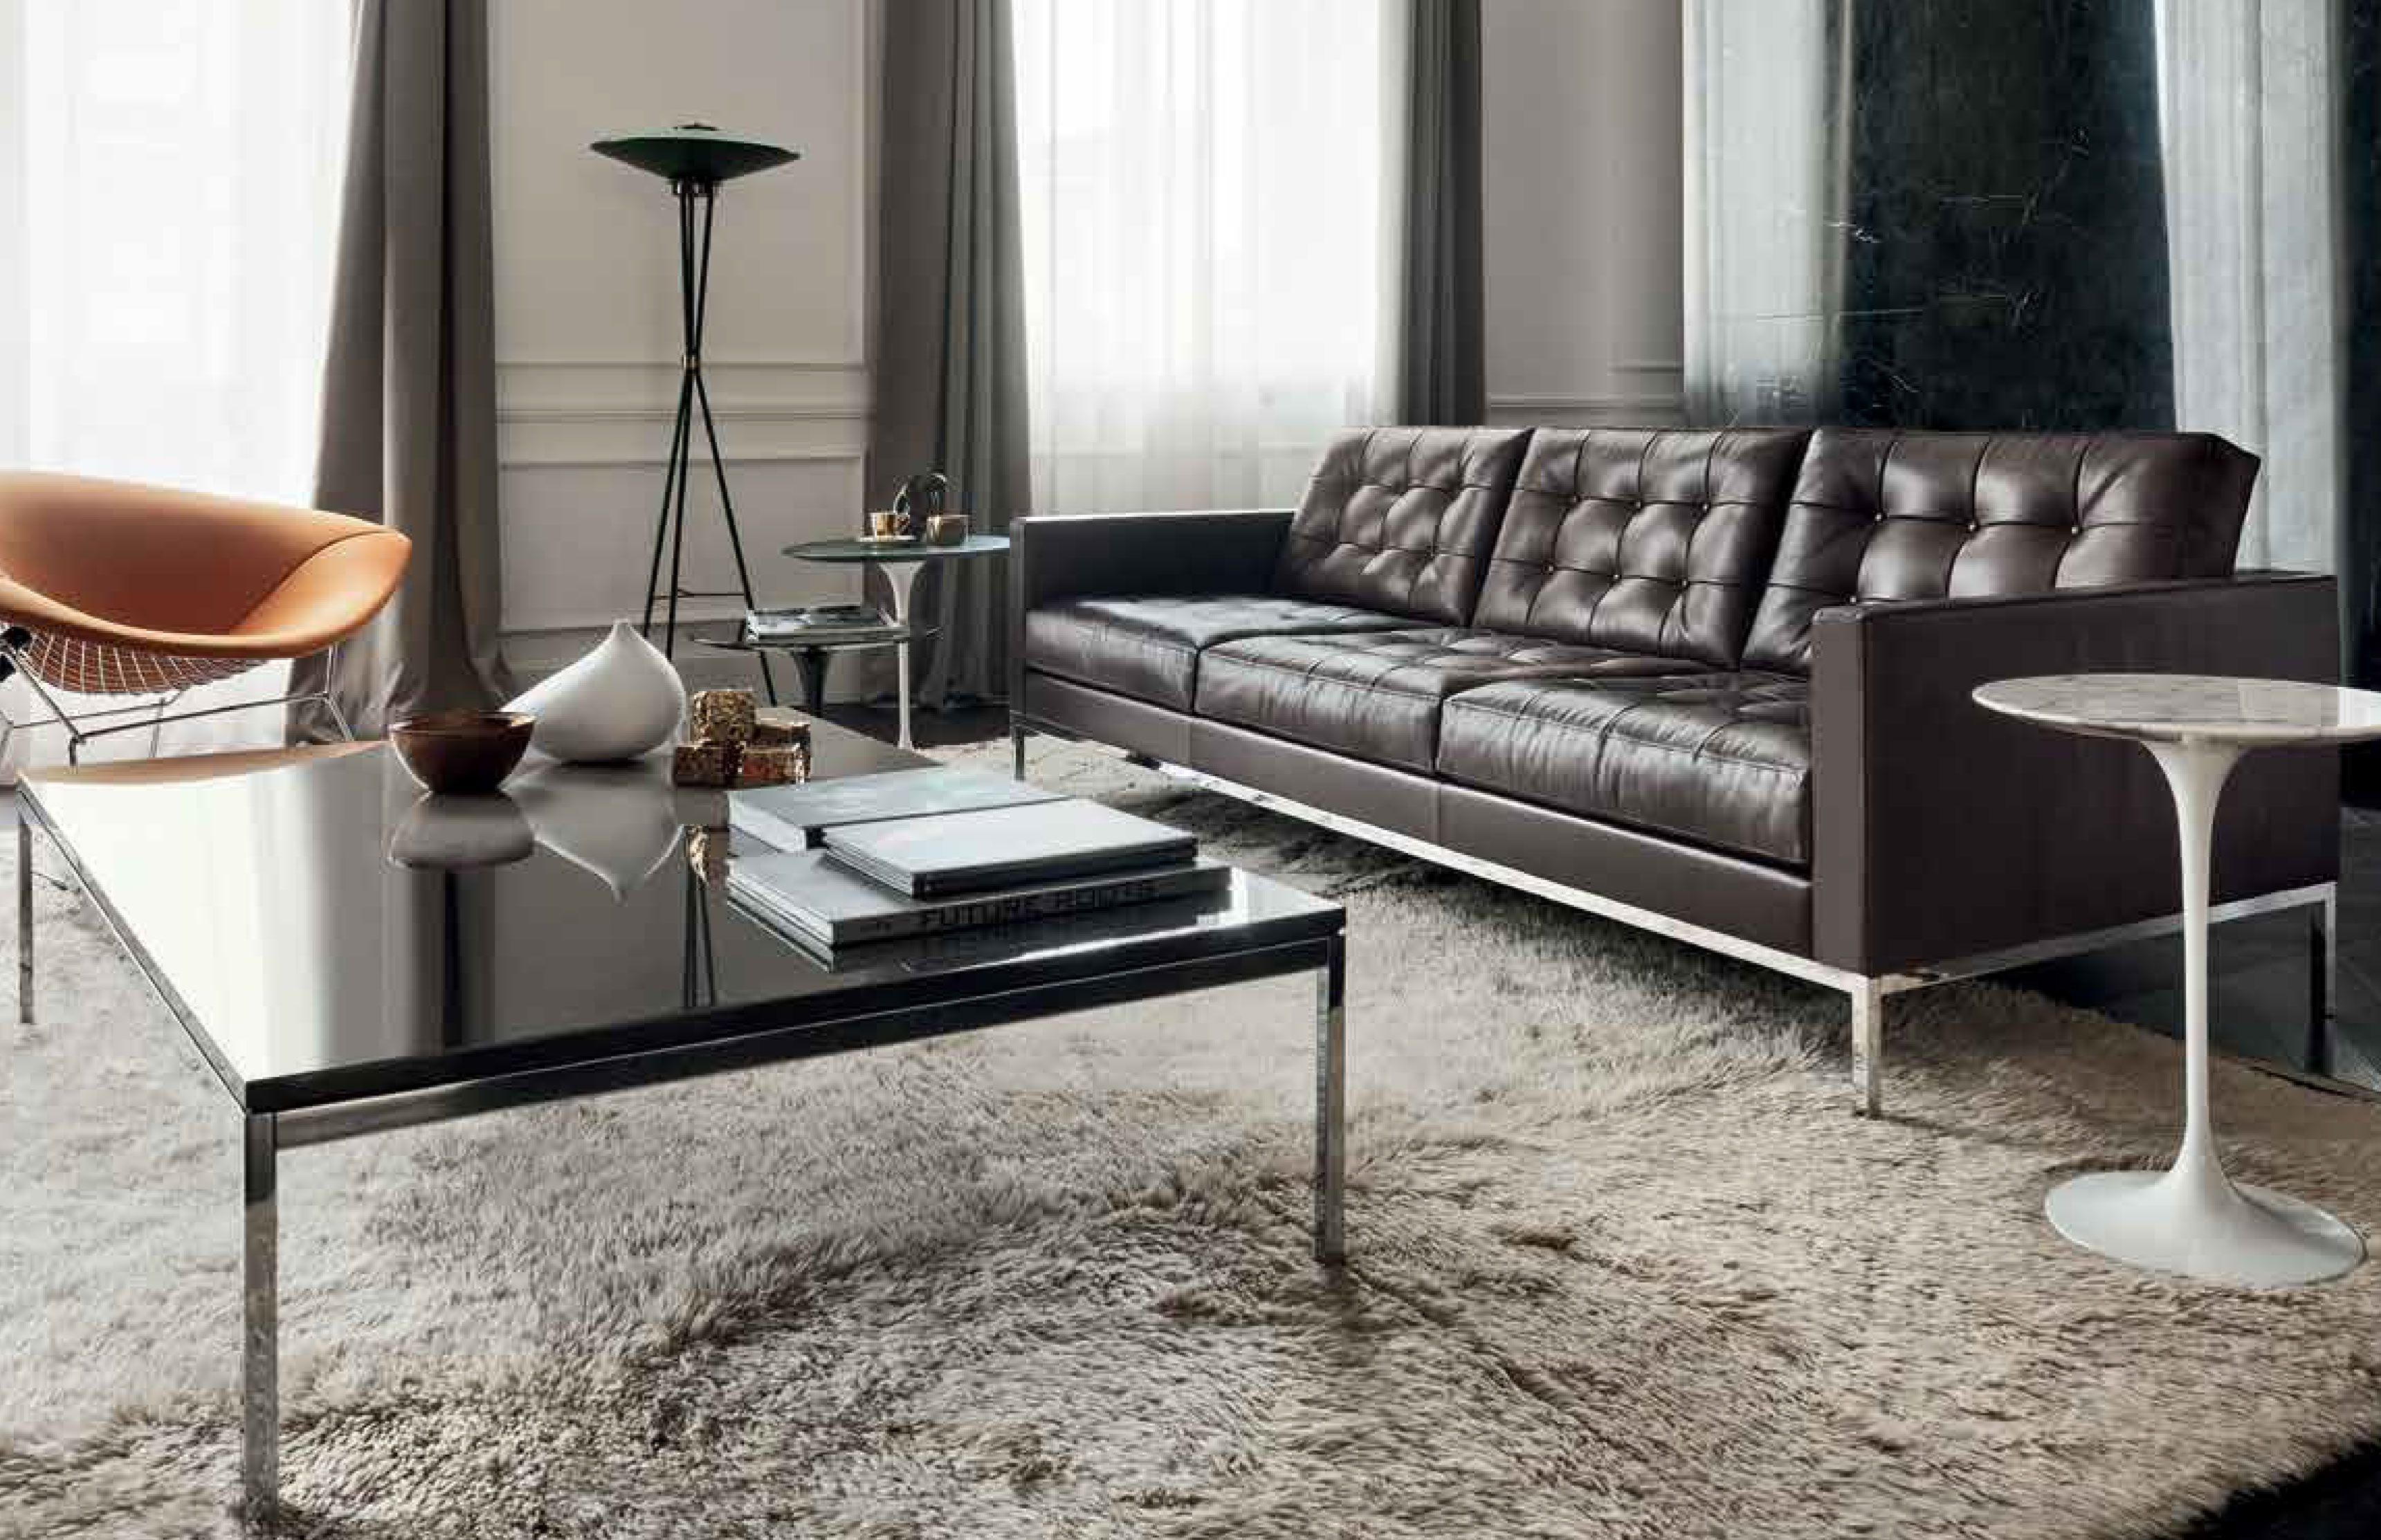 koton naturleder f r florence knoll sofa barcelona sessel. Black Bedroom Furniture Sets. Home Design Ideas